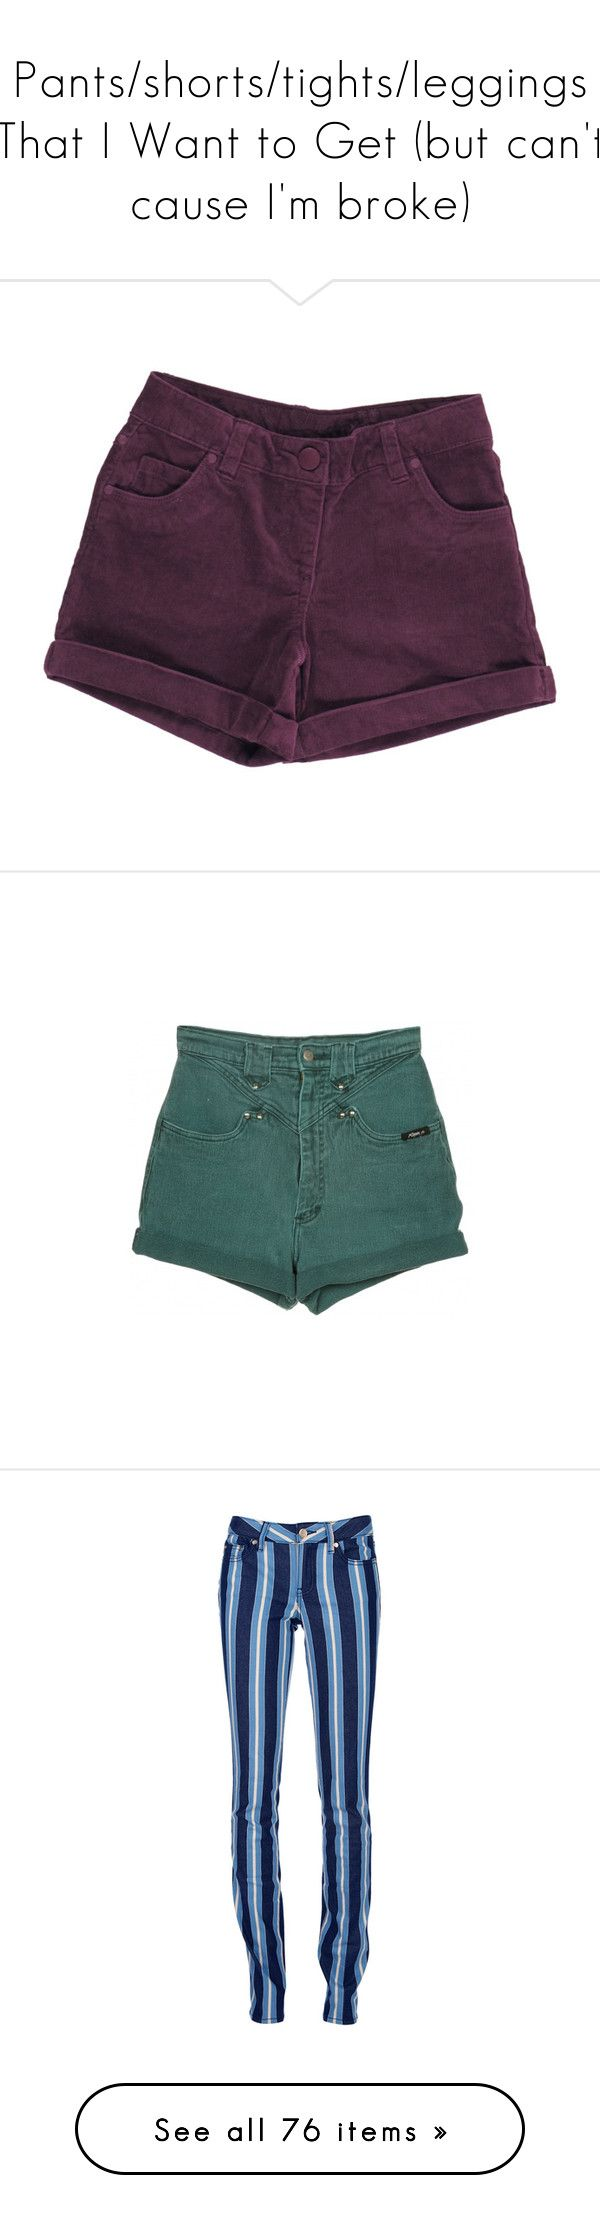 """Pants/shorts/tights/leggings That I Want to Get (but can't cause I'm broke)"" by arielhackworth ❤ liked on Polyvore featuring shorts, bottoms, pants, short, detail, embellishment, short shorts, green jean shorts, green shorts and short jean shorts"